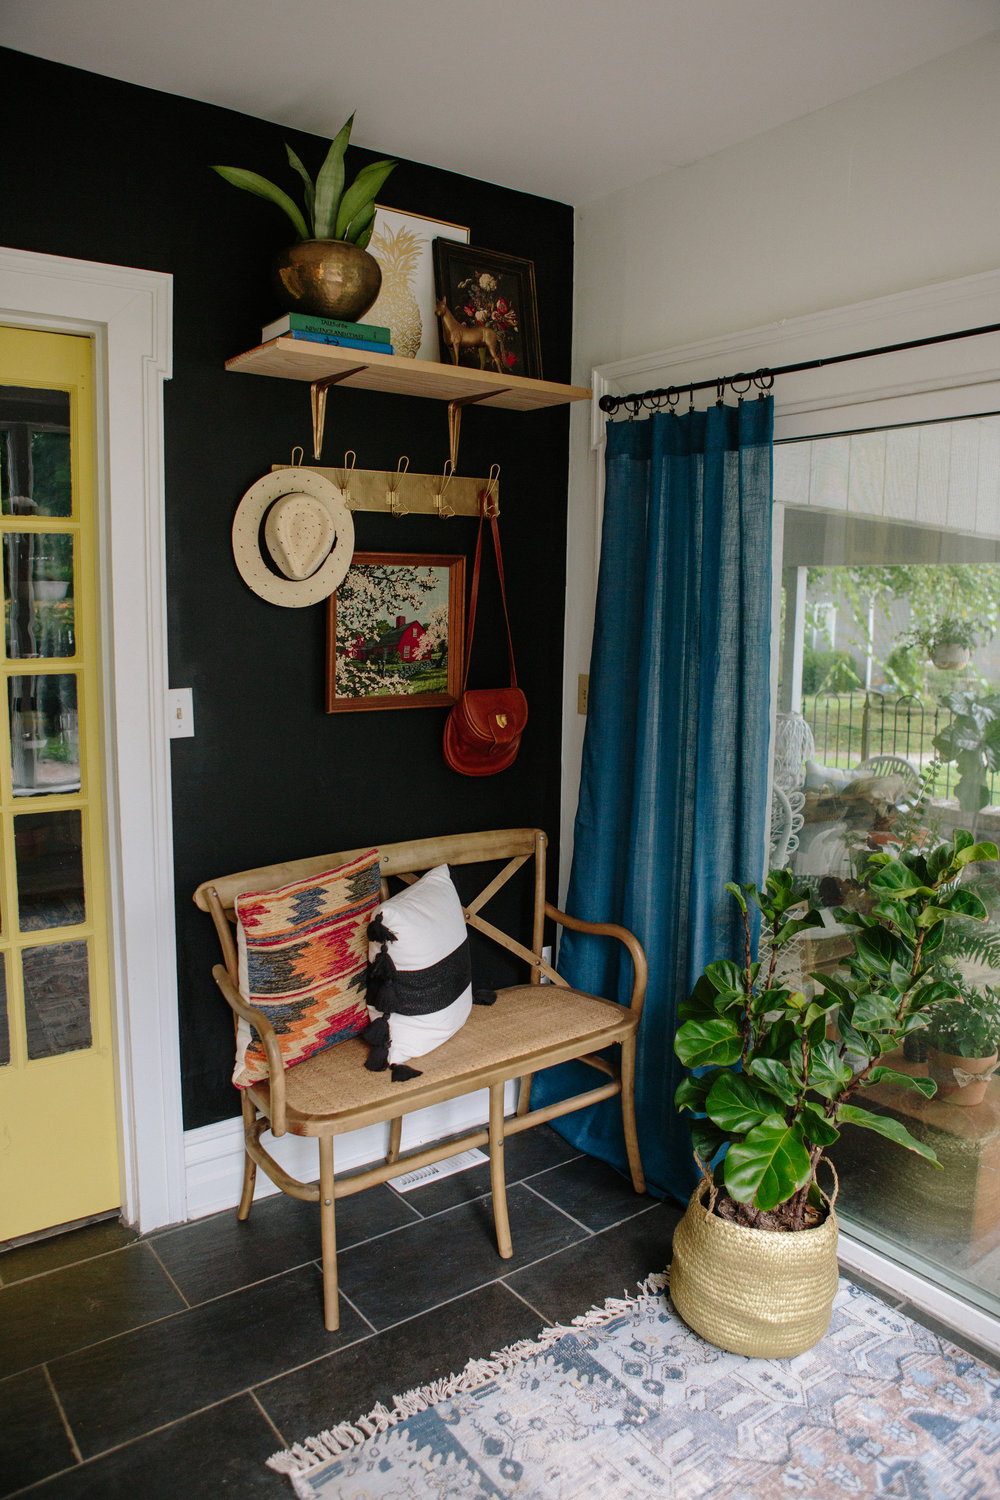 photo by  Sarah E Dunn Photo + Design    |   Rug: Homegoods (similar  here ,  here , +  here )   |     Bench    |    Gold metal coat rack: Homegoods (similar  here )   |   Kilim pillow: Homegoods (similar  here ,  here , +  here )   |   Gold pineapple print: Homegoods (similar  here  +  here )   |  Striped tassel pillow: Target-old (similar  here )   | Brass horse statue: Vintage (similar  here )   |  Brass planter (similar  here )   |    Gold basket for plant